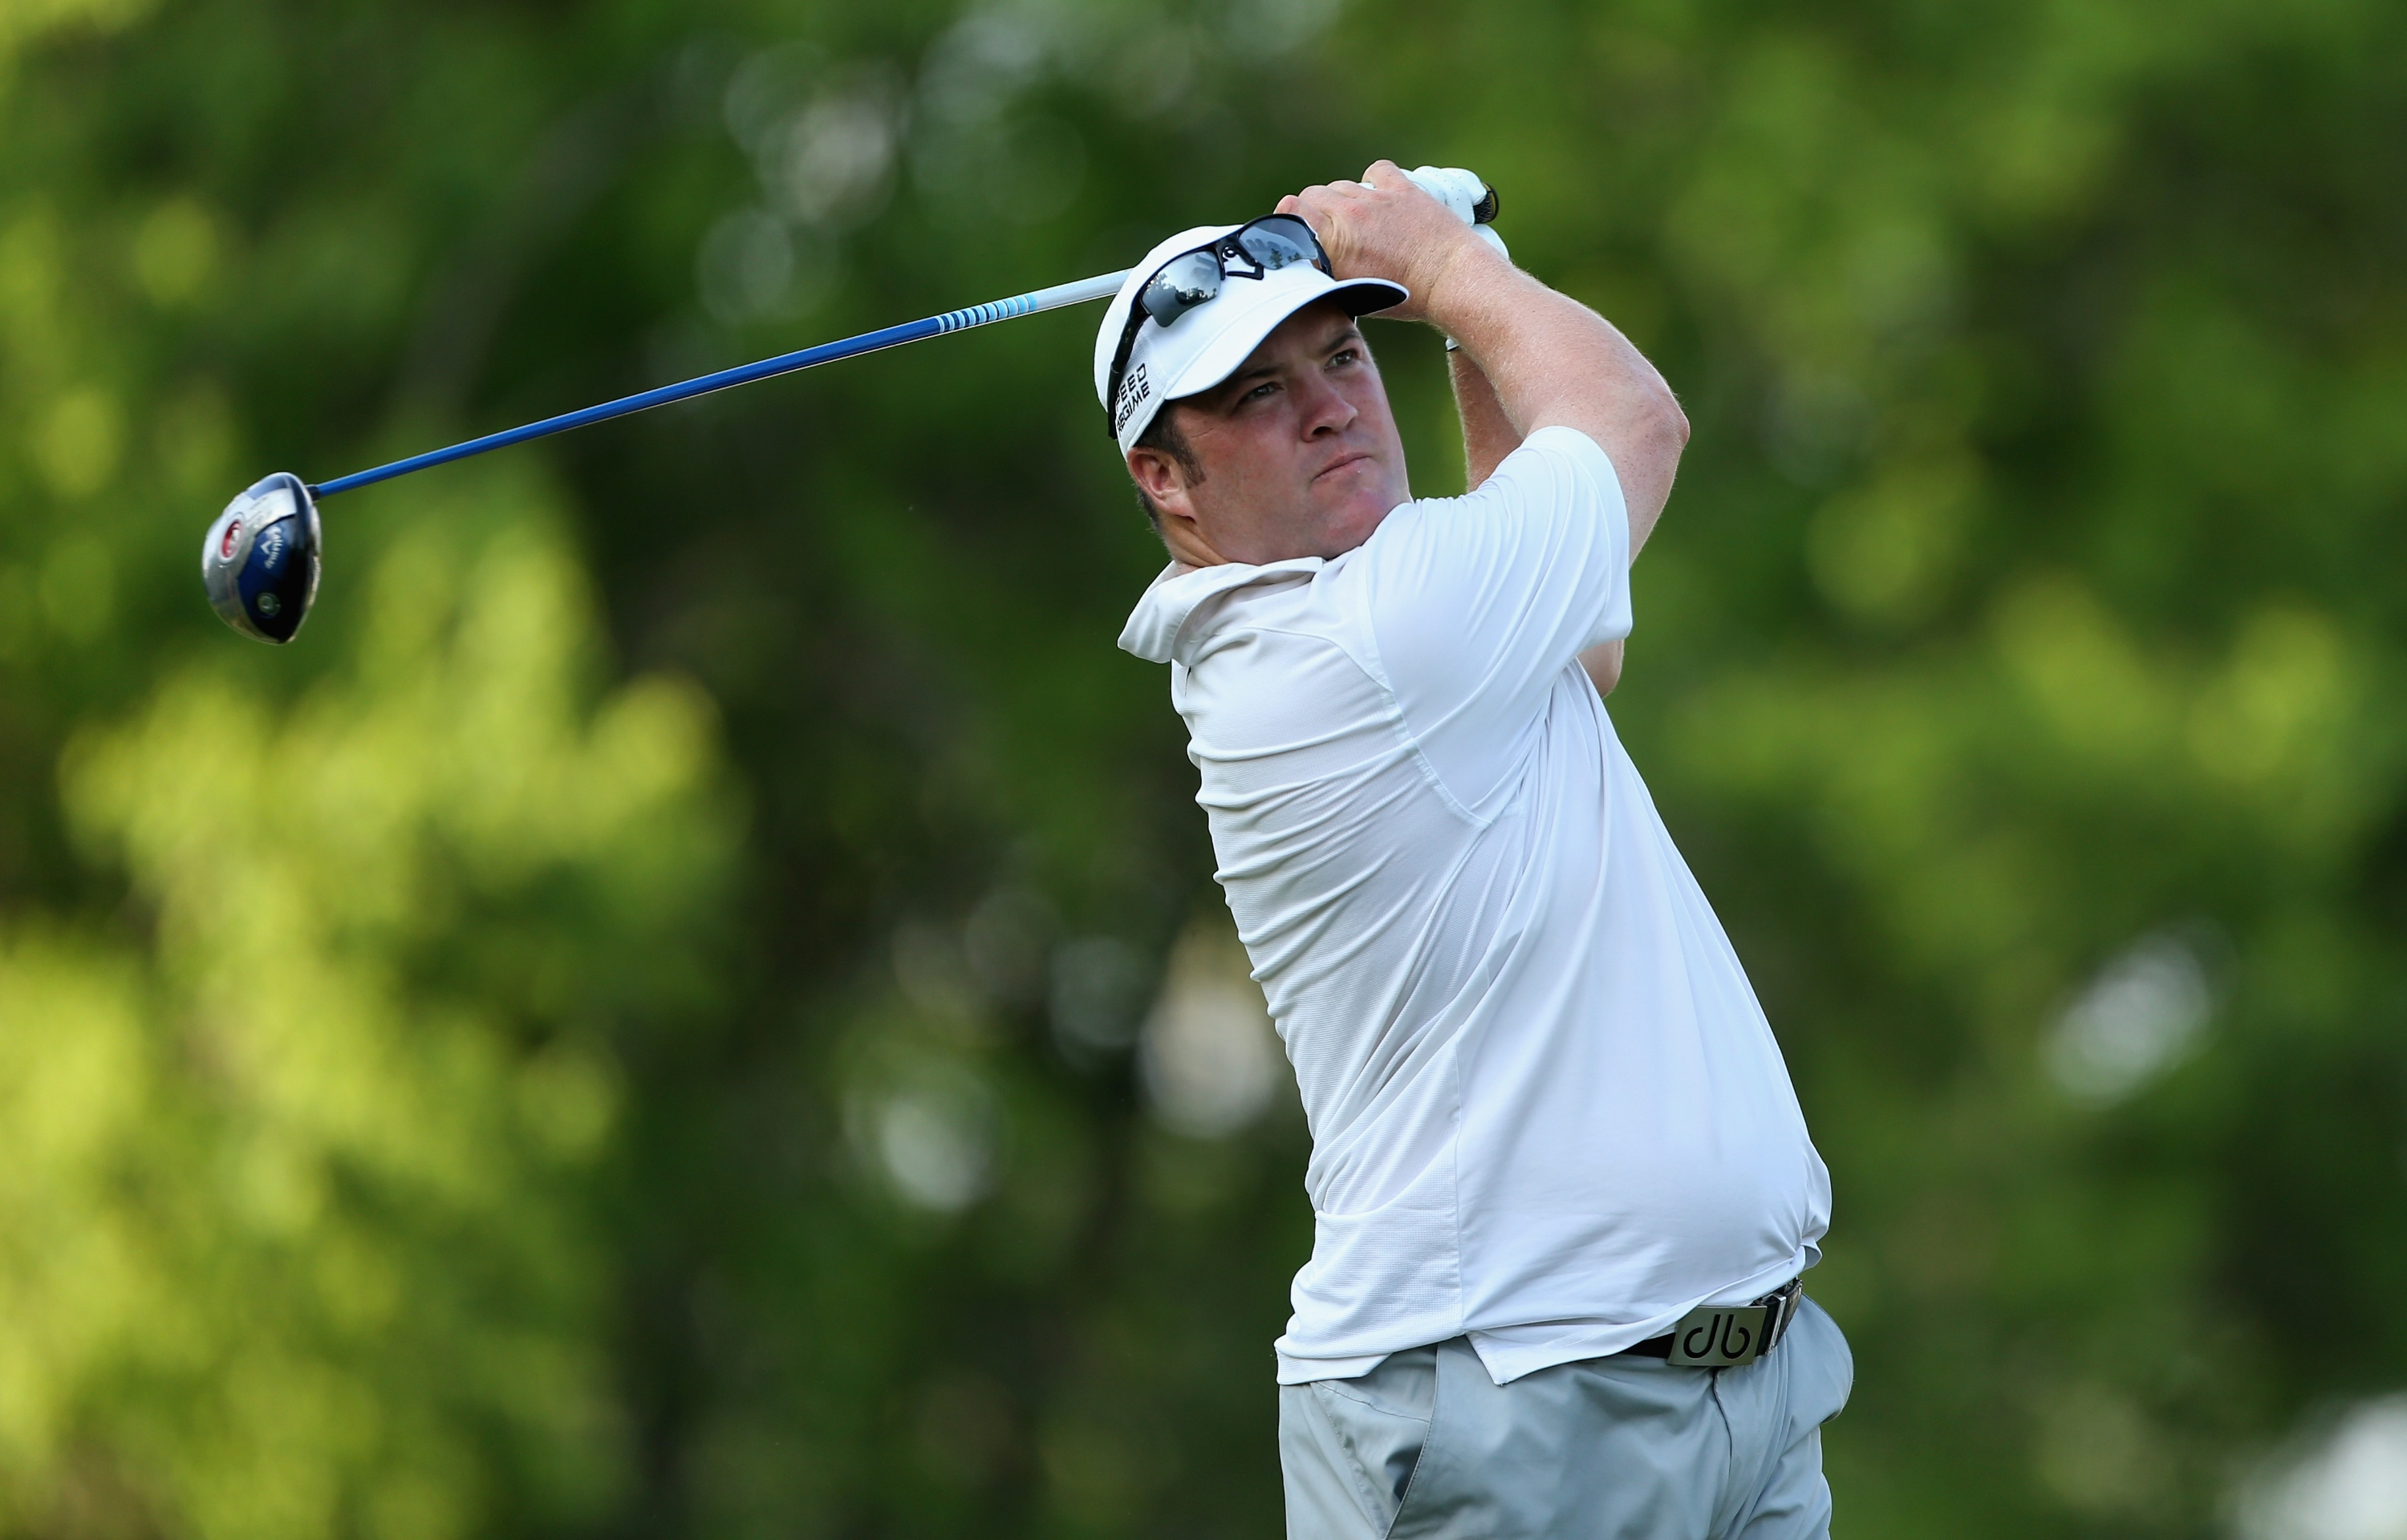 Zurich Classic of New Orleans - Round Two